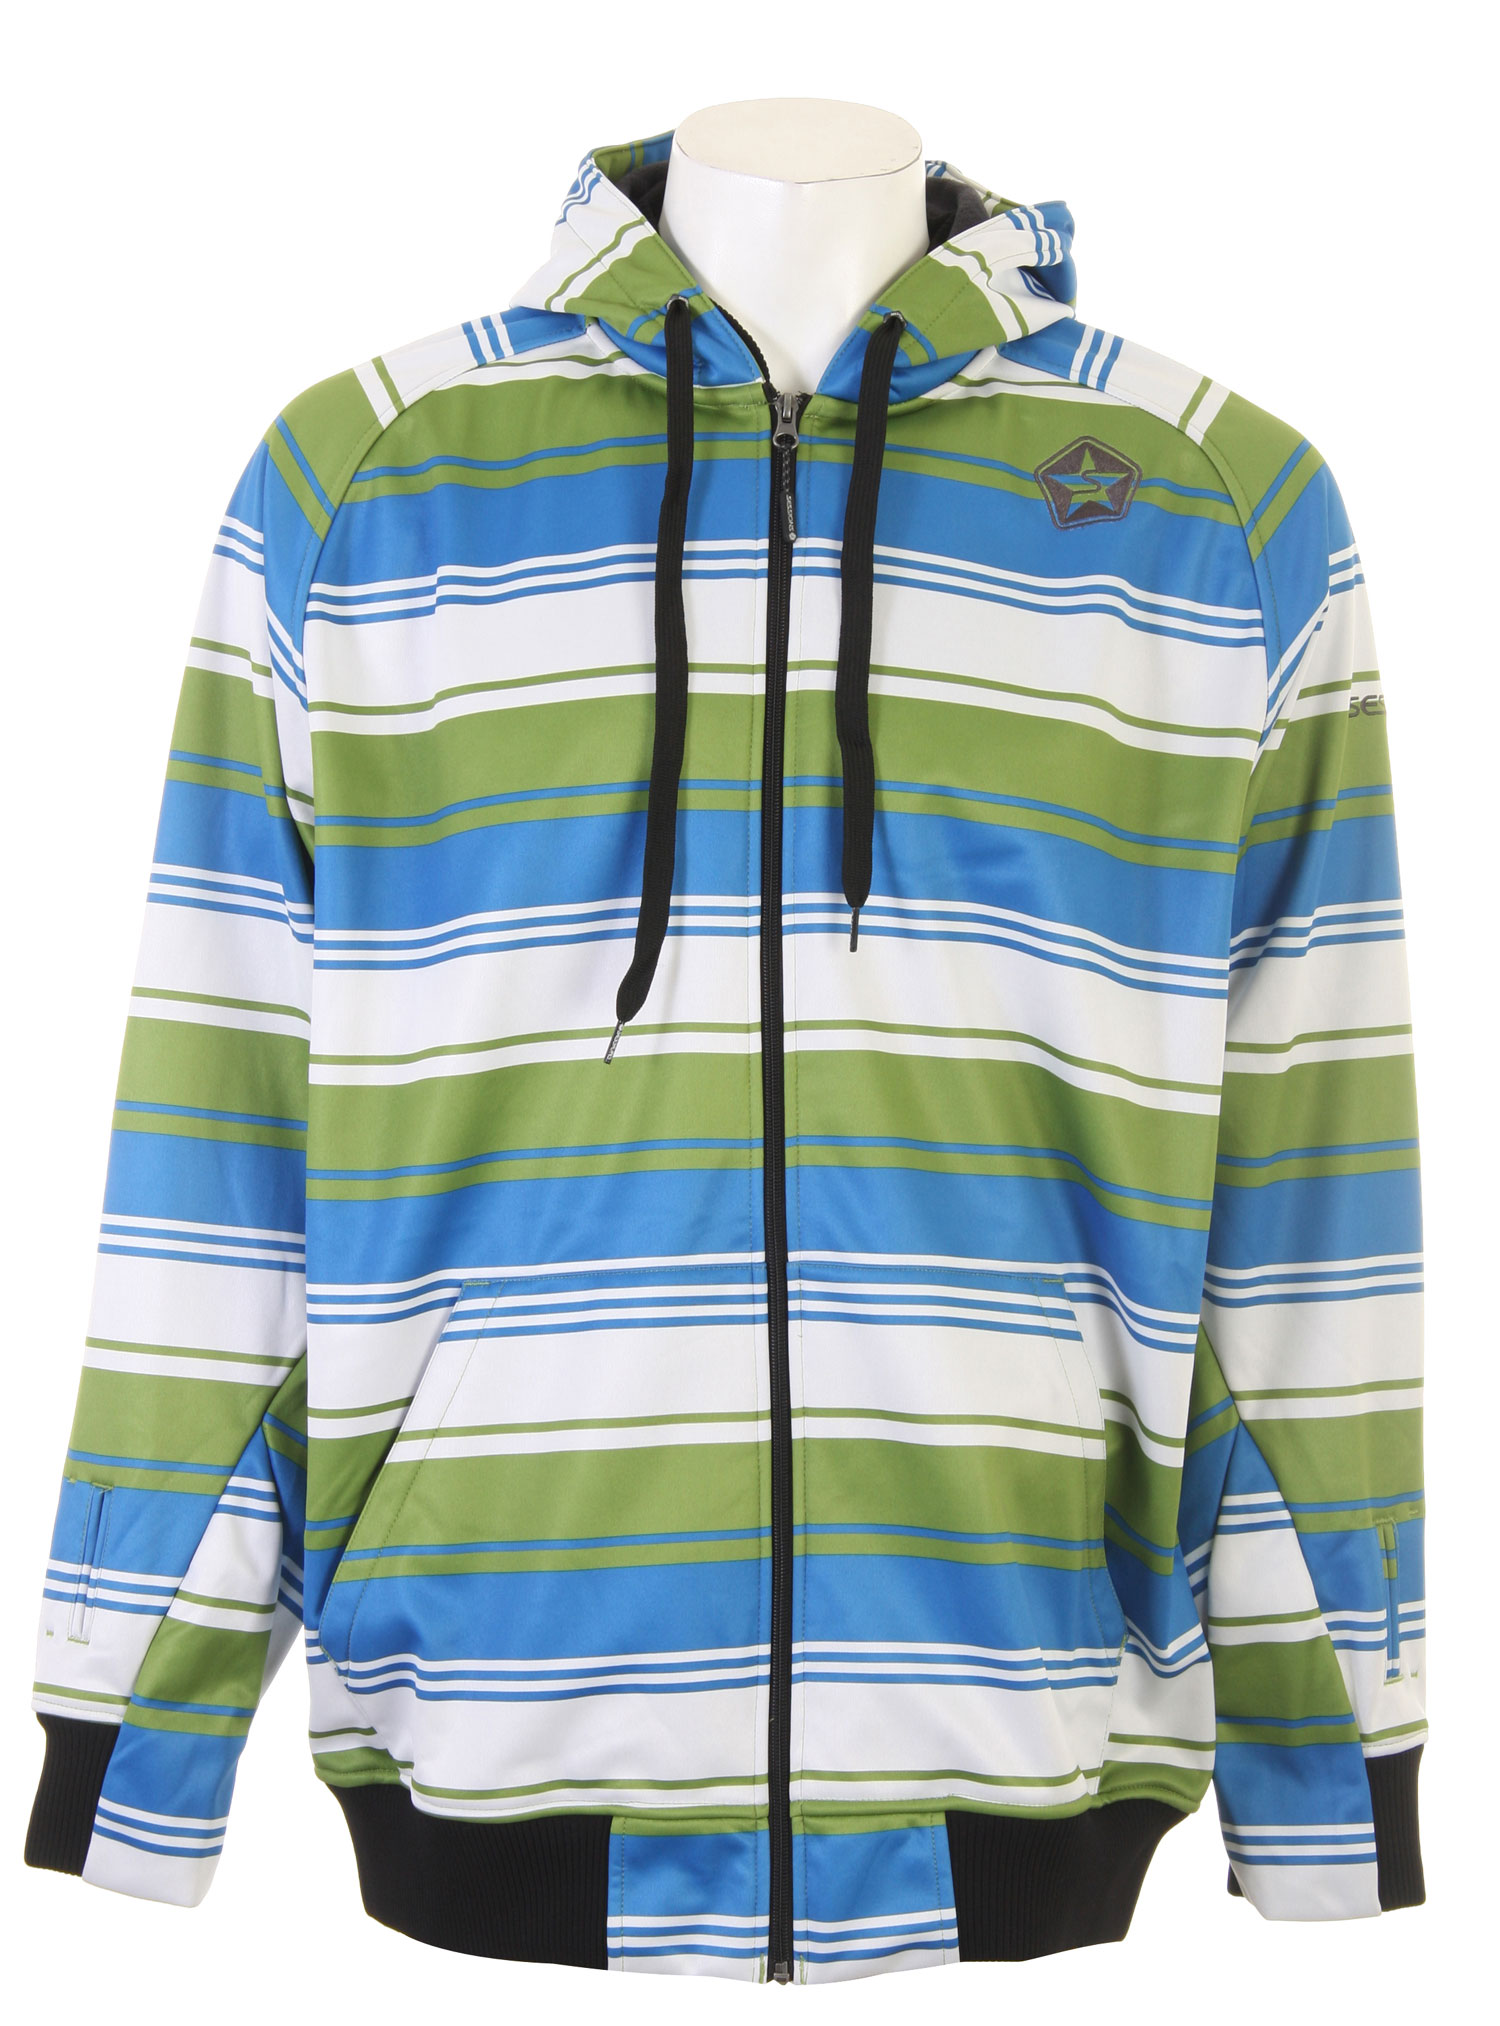 The Sessions Retro Stripe Softshell Jacket is a hoodie Style Softshell Jacket with Hidden Mitten feature and Audio Ports.Key Features of the Sessions Retro Stripe Softshell Jacket: 5,000mm Waterproof 8,000g Breathability Fit: True - $73.47